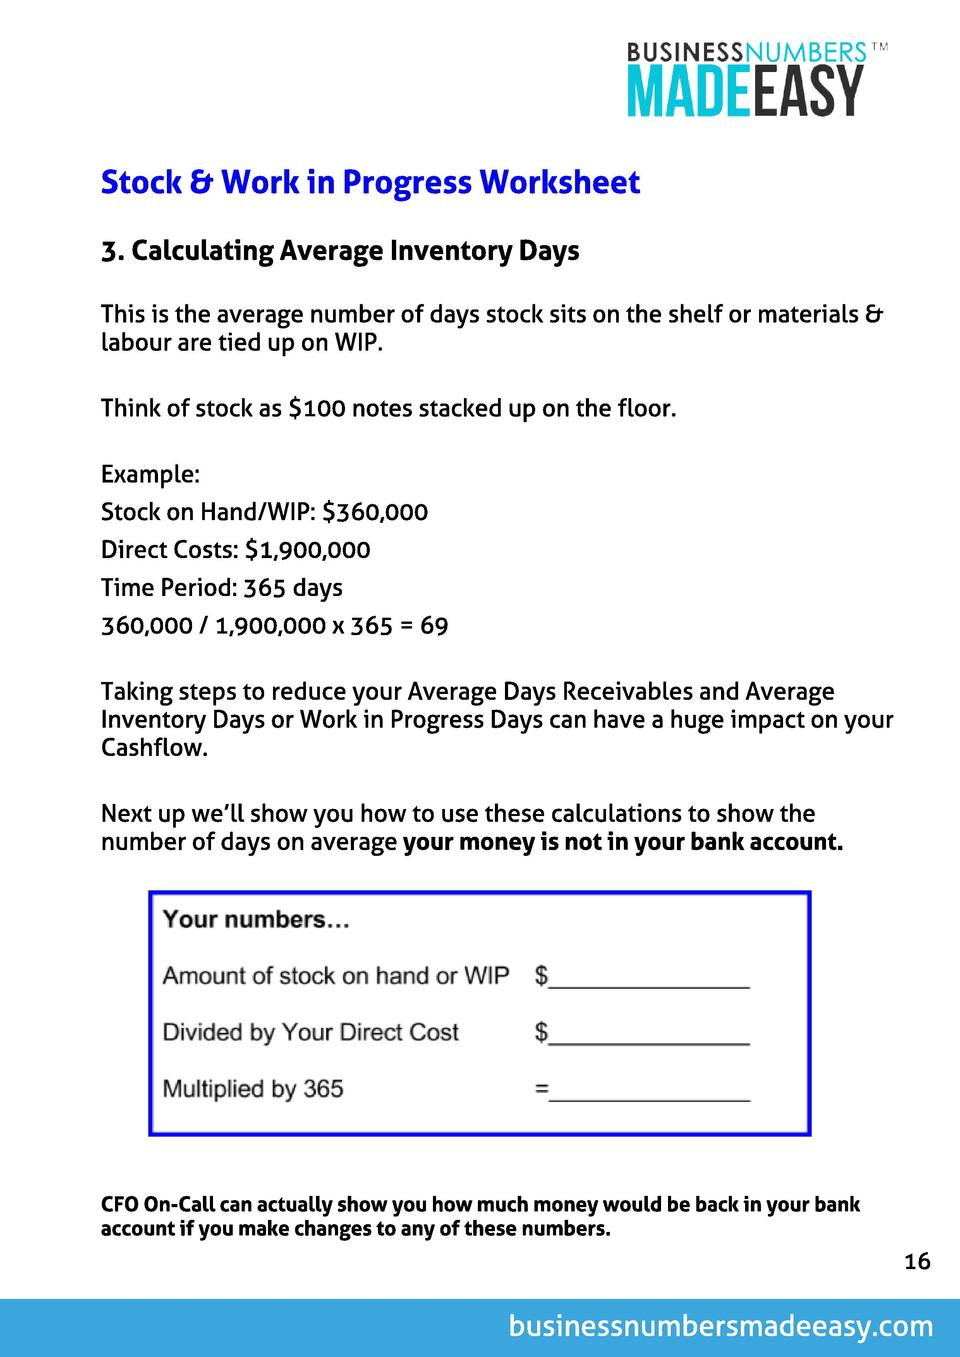 St ock   Work in Progress Worksheet 3. Cal cul at ing Average Invent ory Days This is the average number of days stock sit...